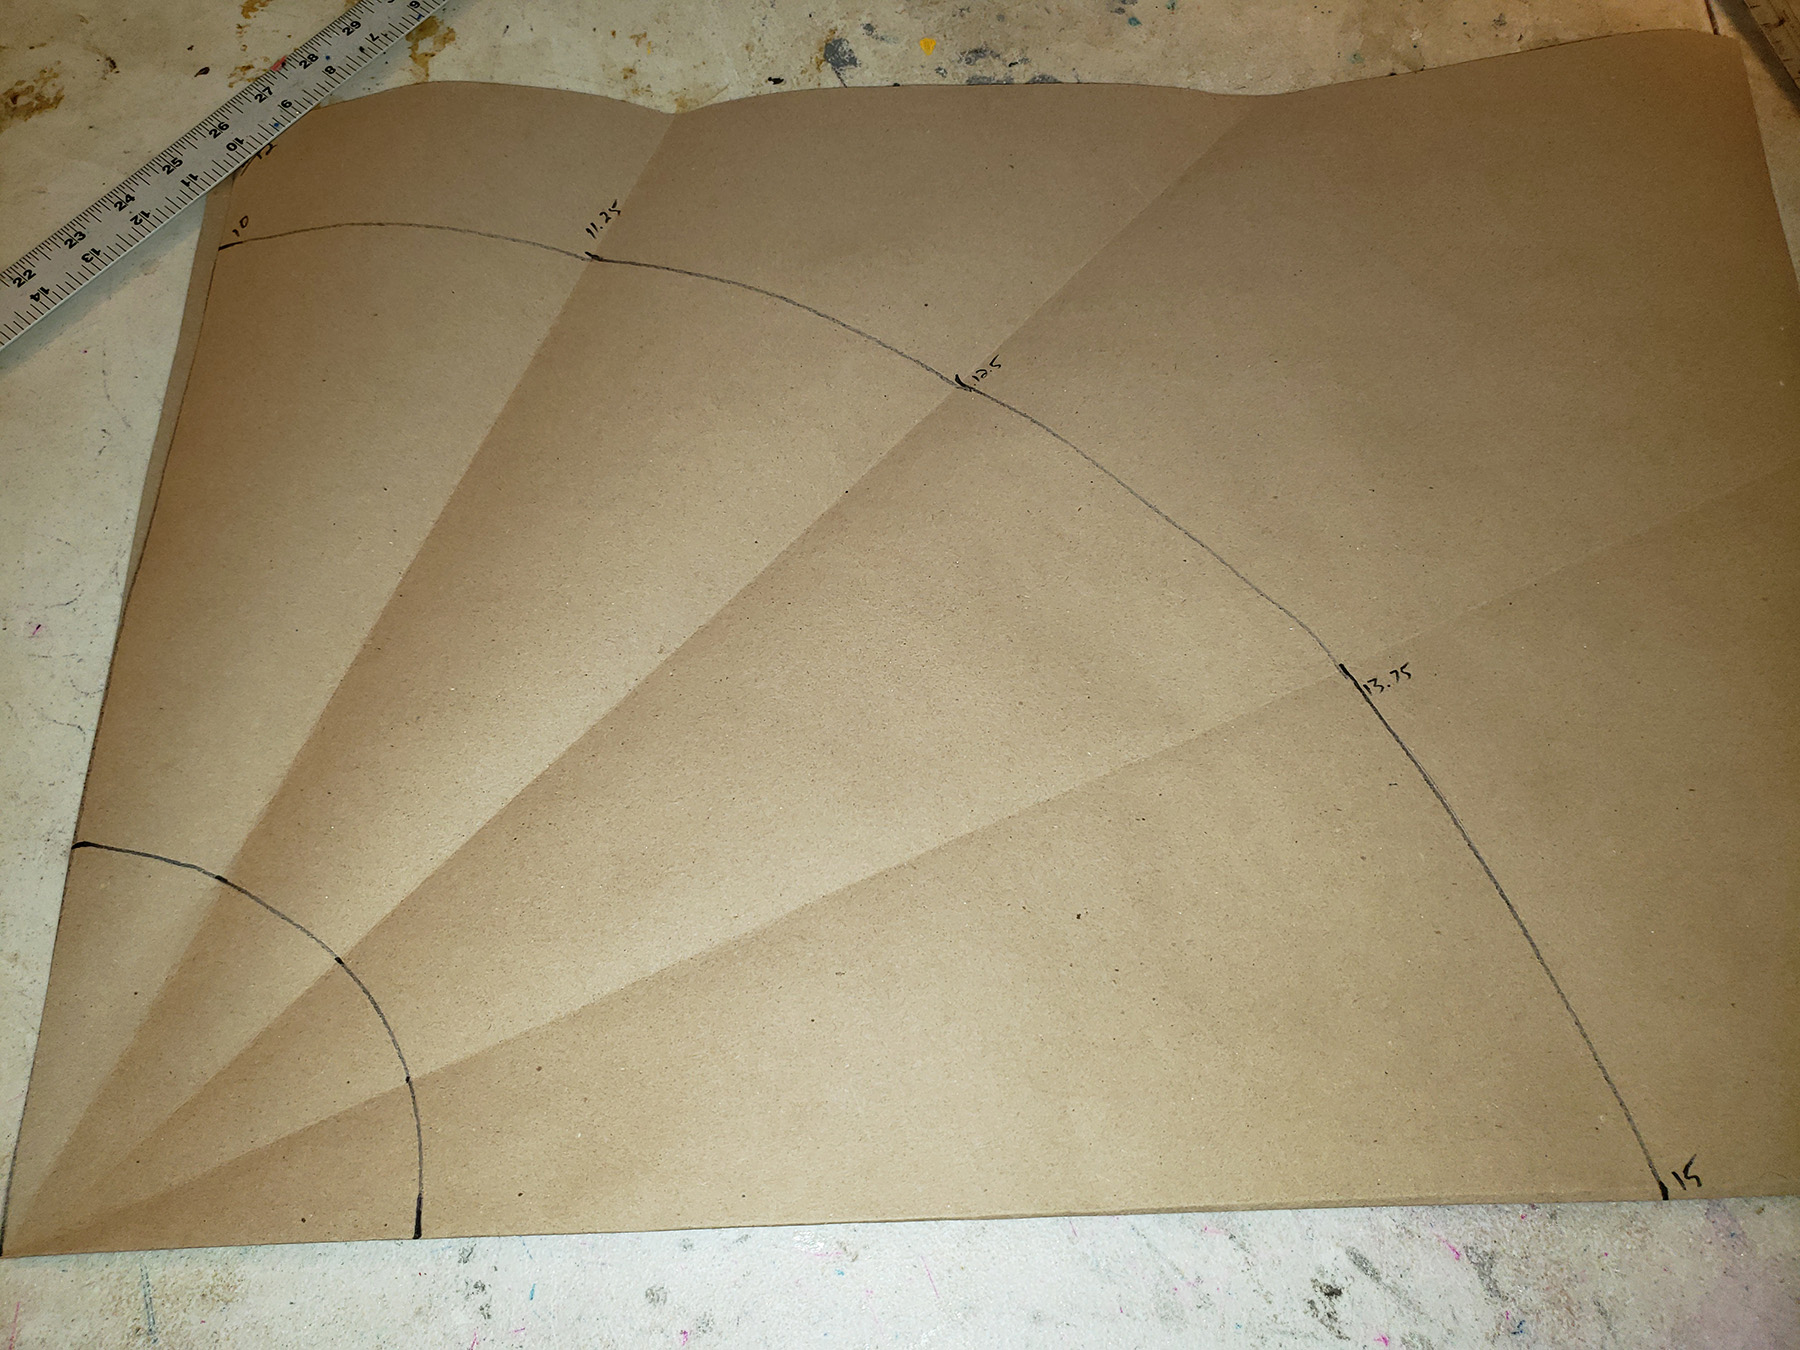 A circle skirt pattern drafted onto a folded piece of brown craft paper.